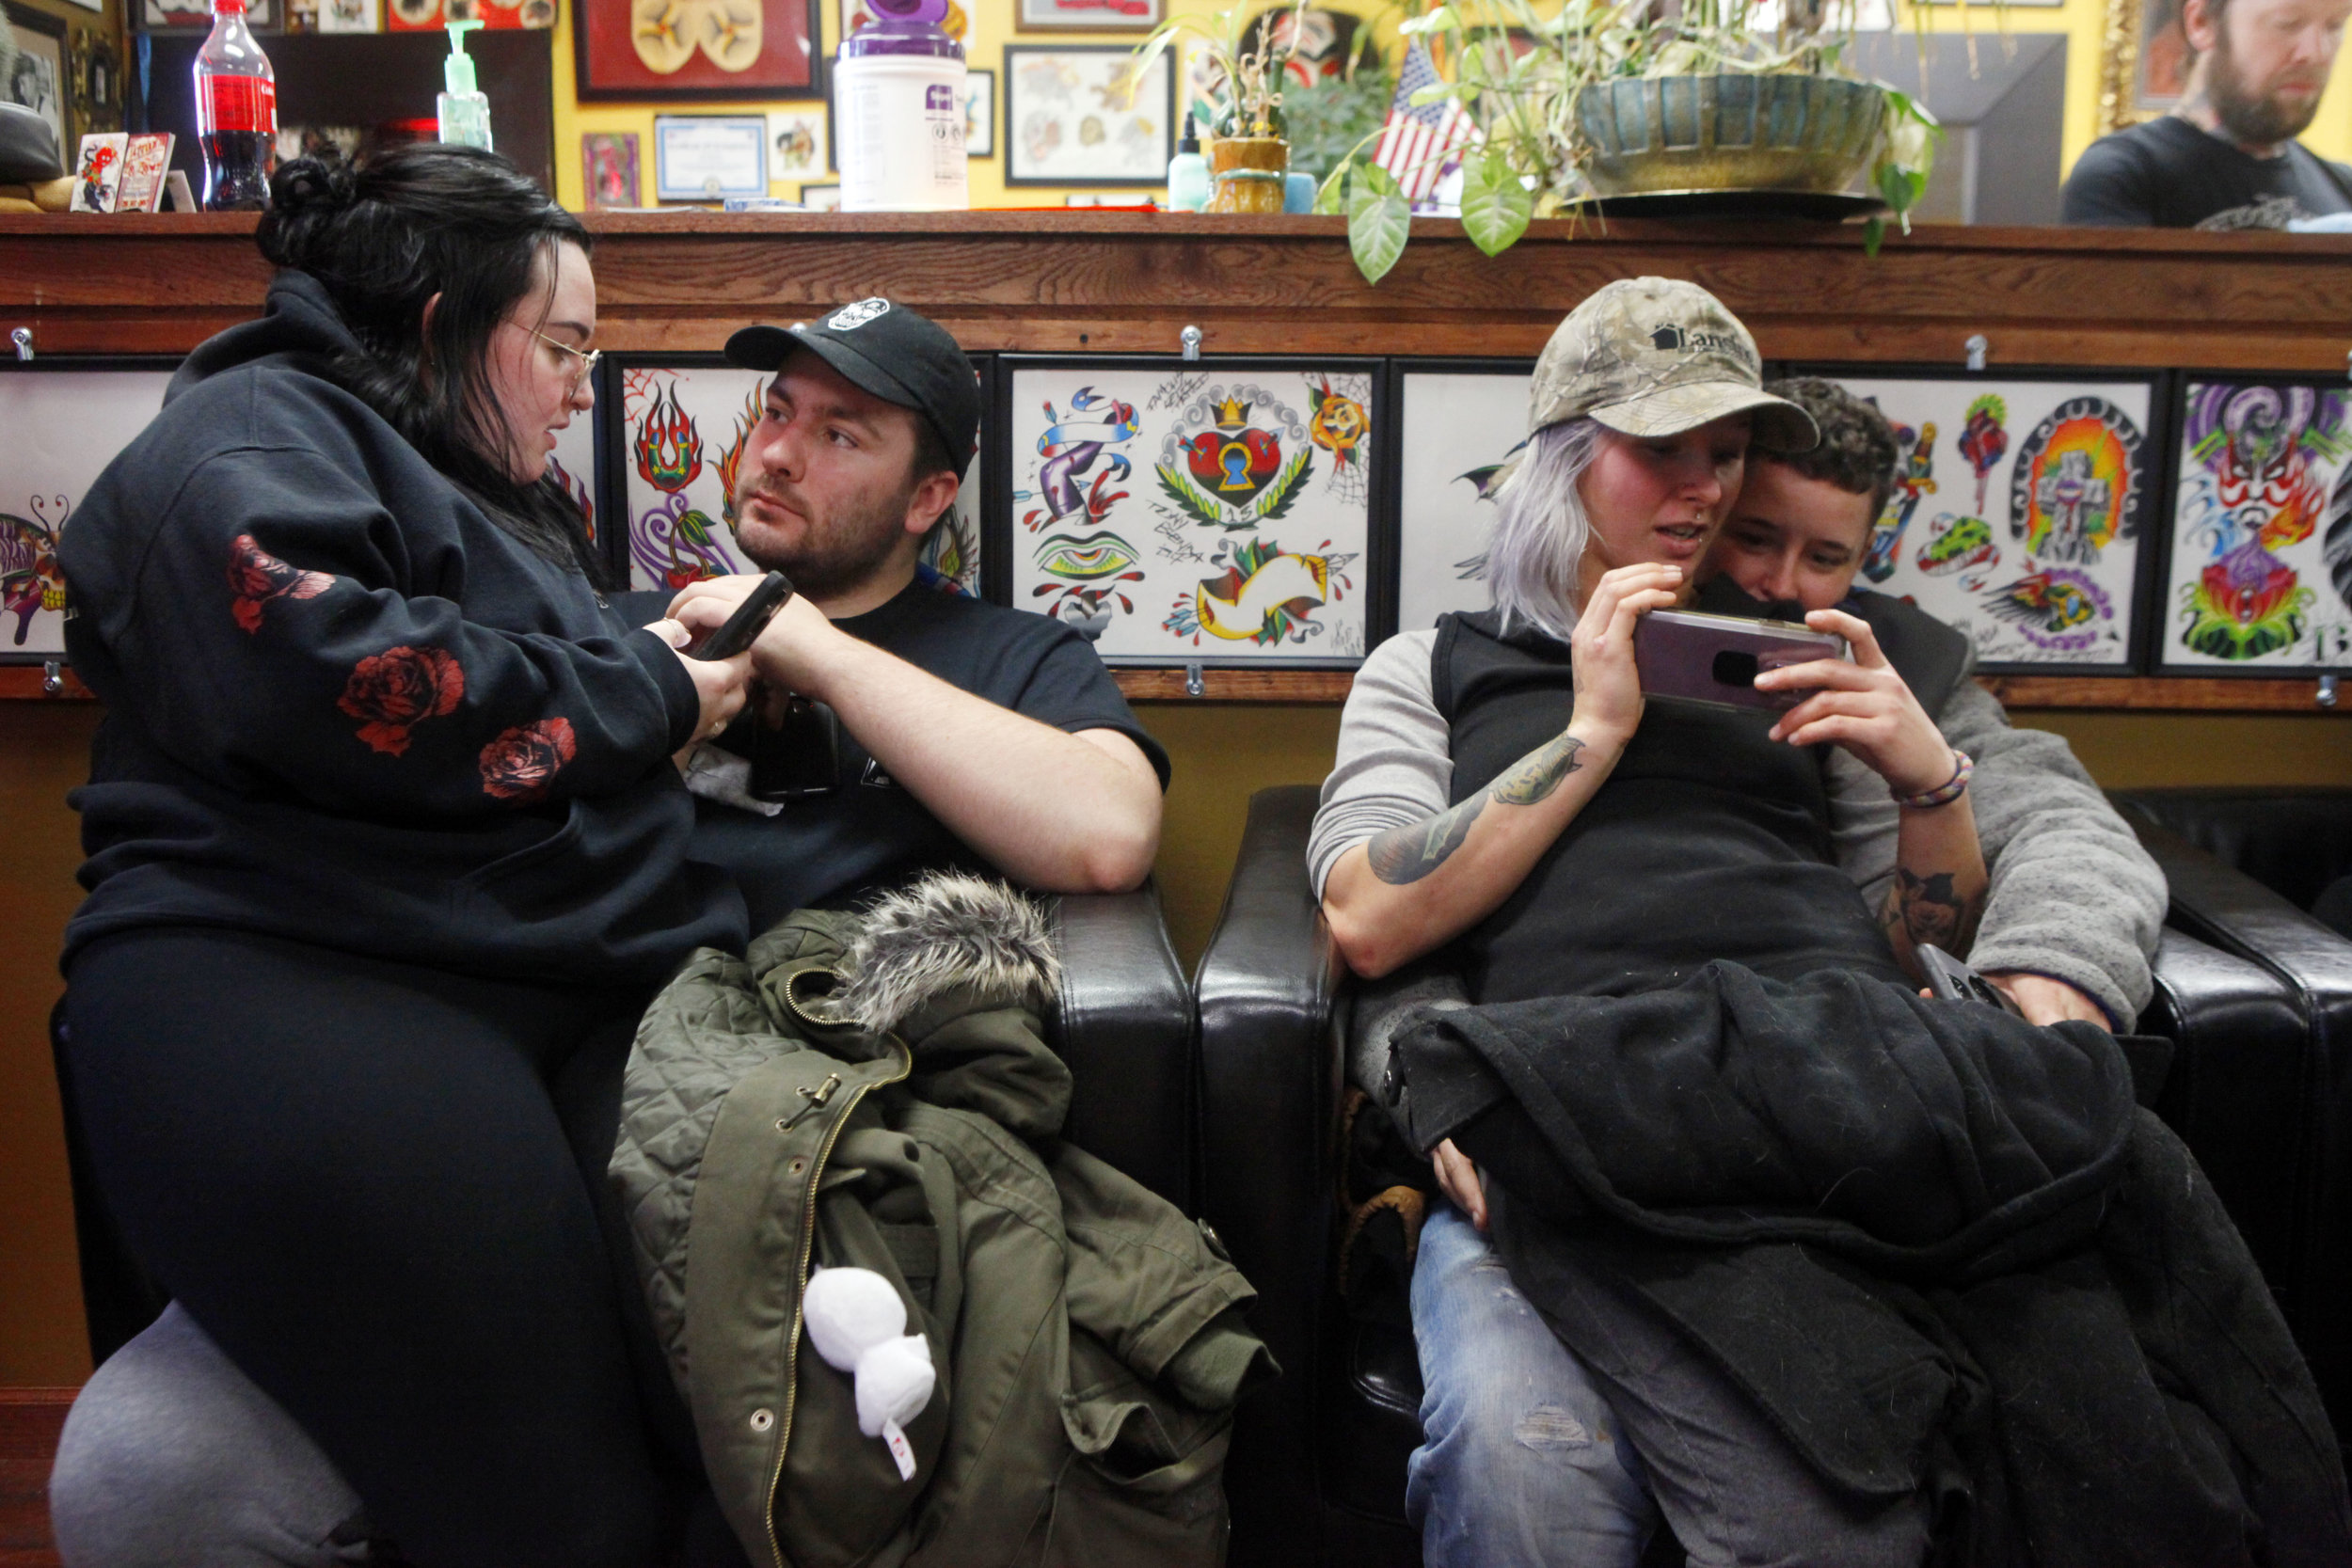 A pair of couples wait their turn to get tattoos at 45th Street Tattoo in Griffith during the business' third annual Toys for Tots event. Pictured to the left are Morgan Weidman, of Chicago and Jacob Sylvester, of Crown Point, and to the right are Amber Jetmund, of Portage, and Boogie Pacheco, also of Portage. A children's toy donation was able to be exchanged for a free tattoo.